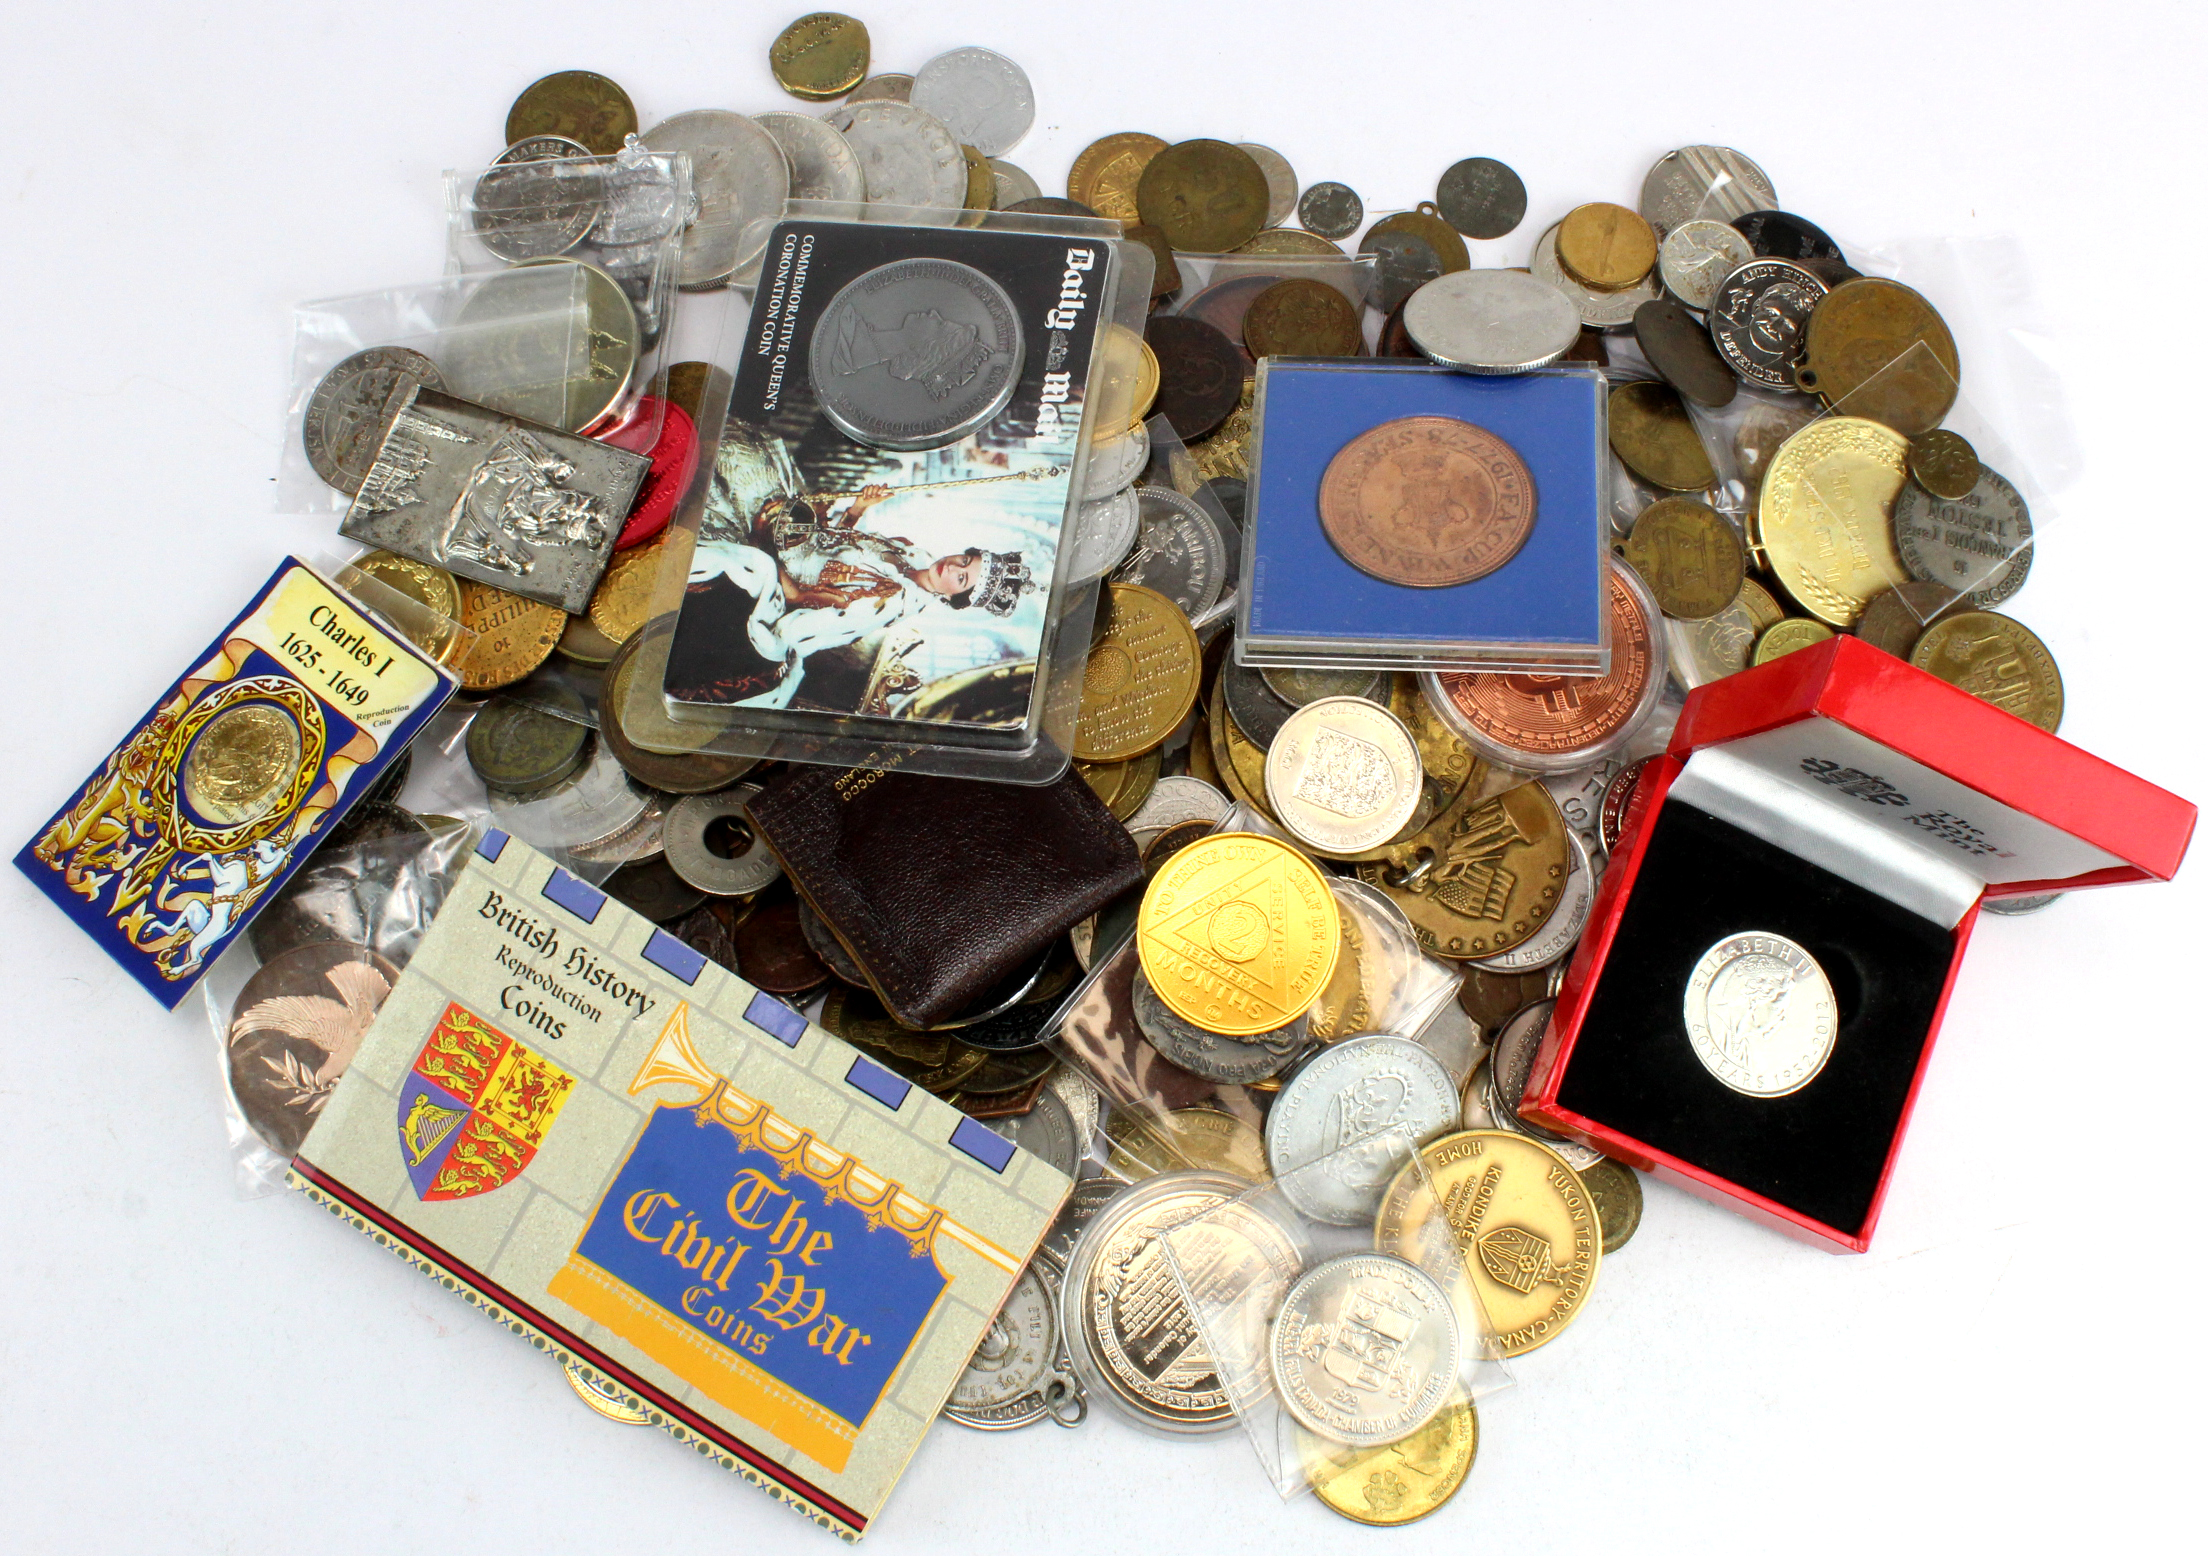 Tokens, medallions, repros, counters etc (300)